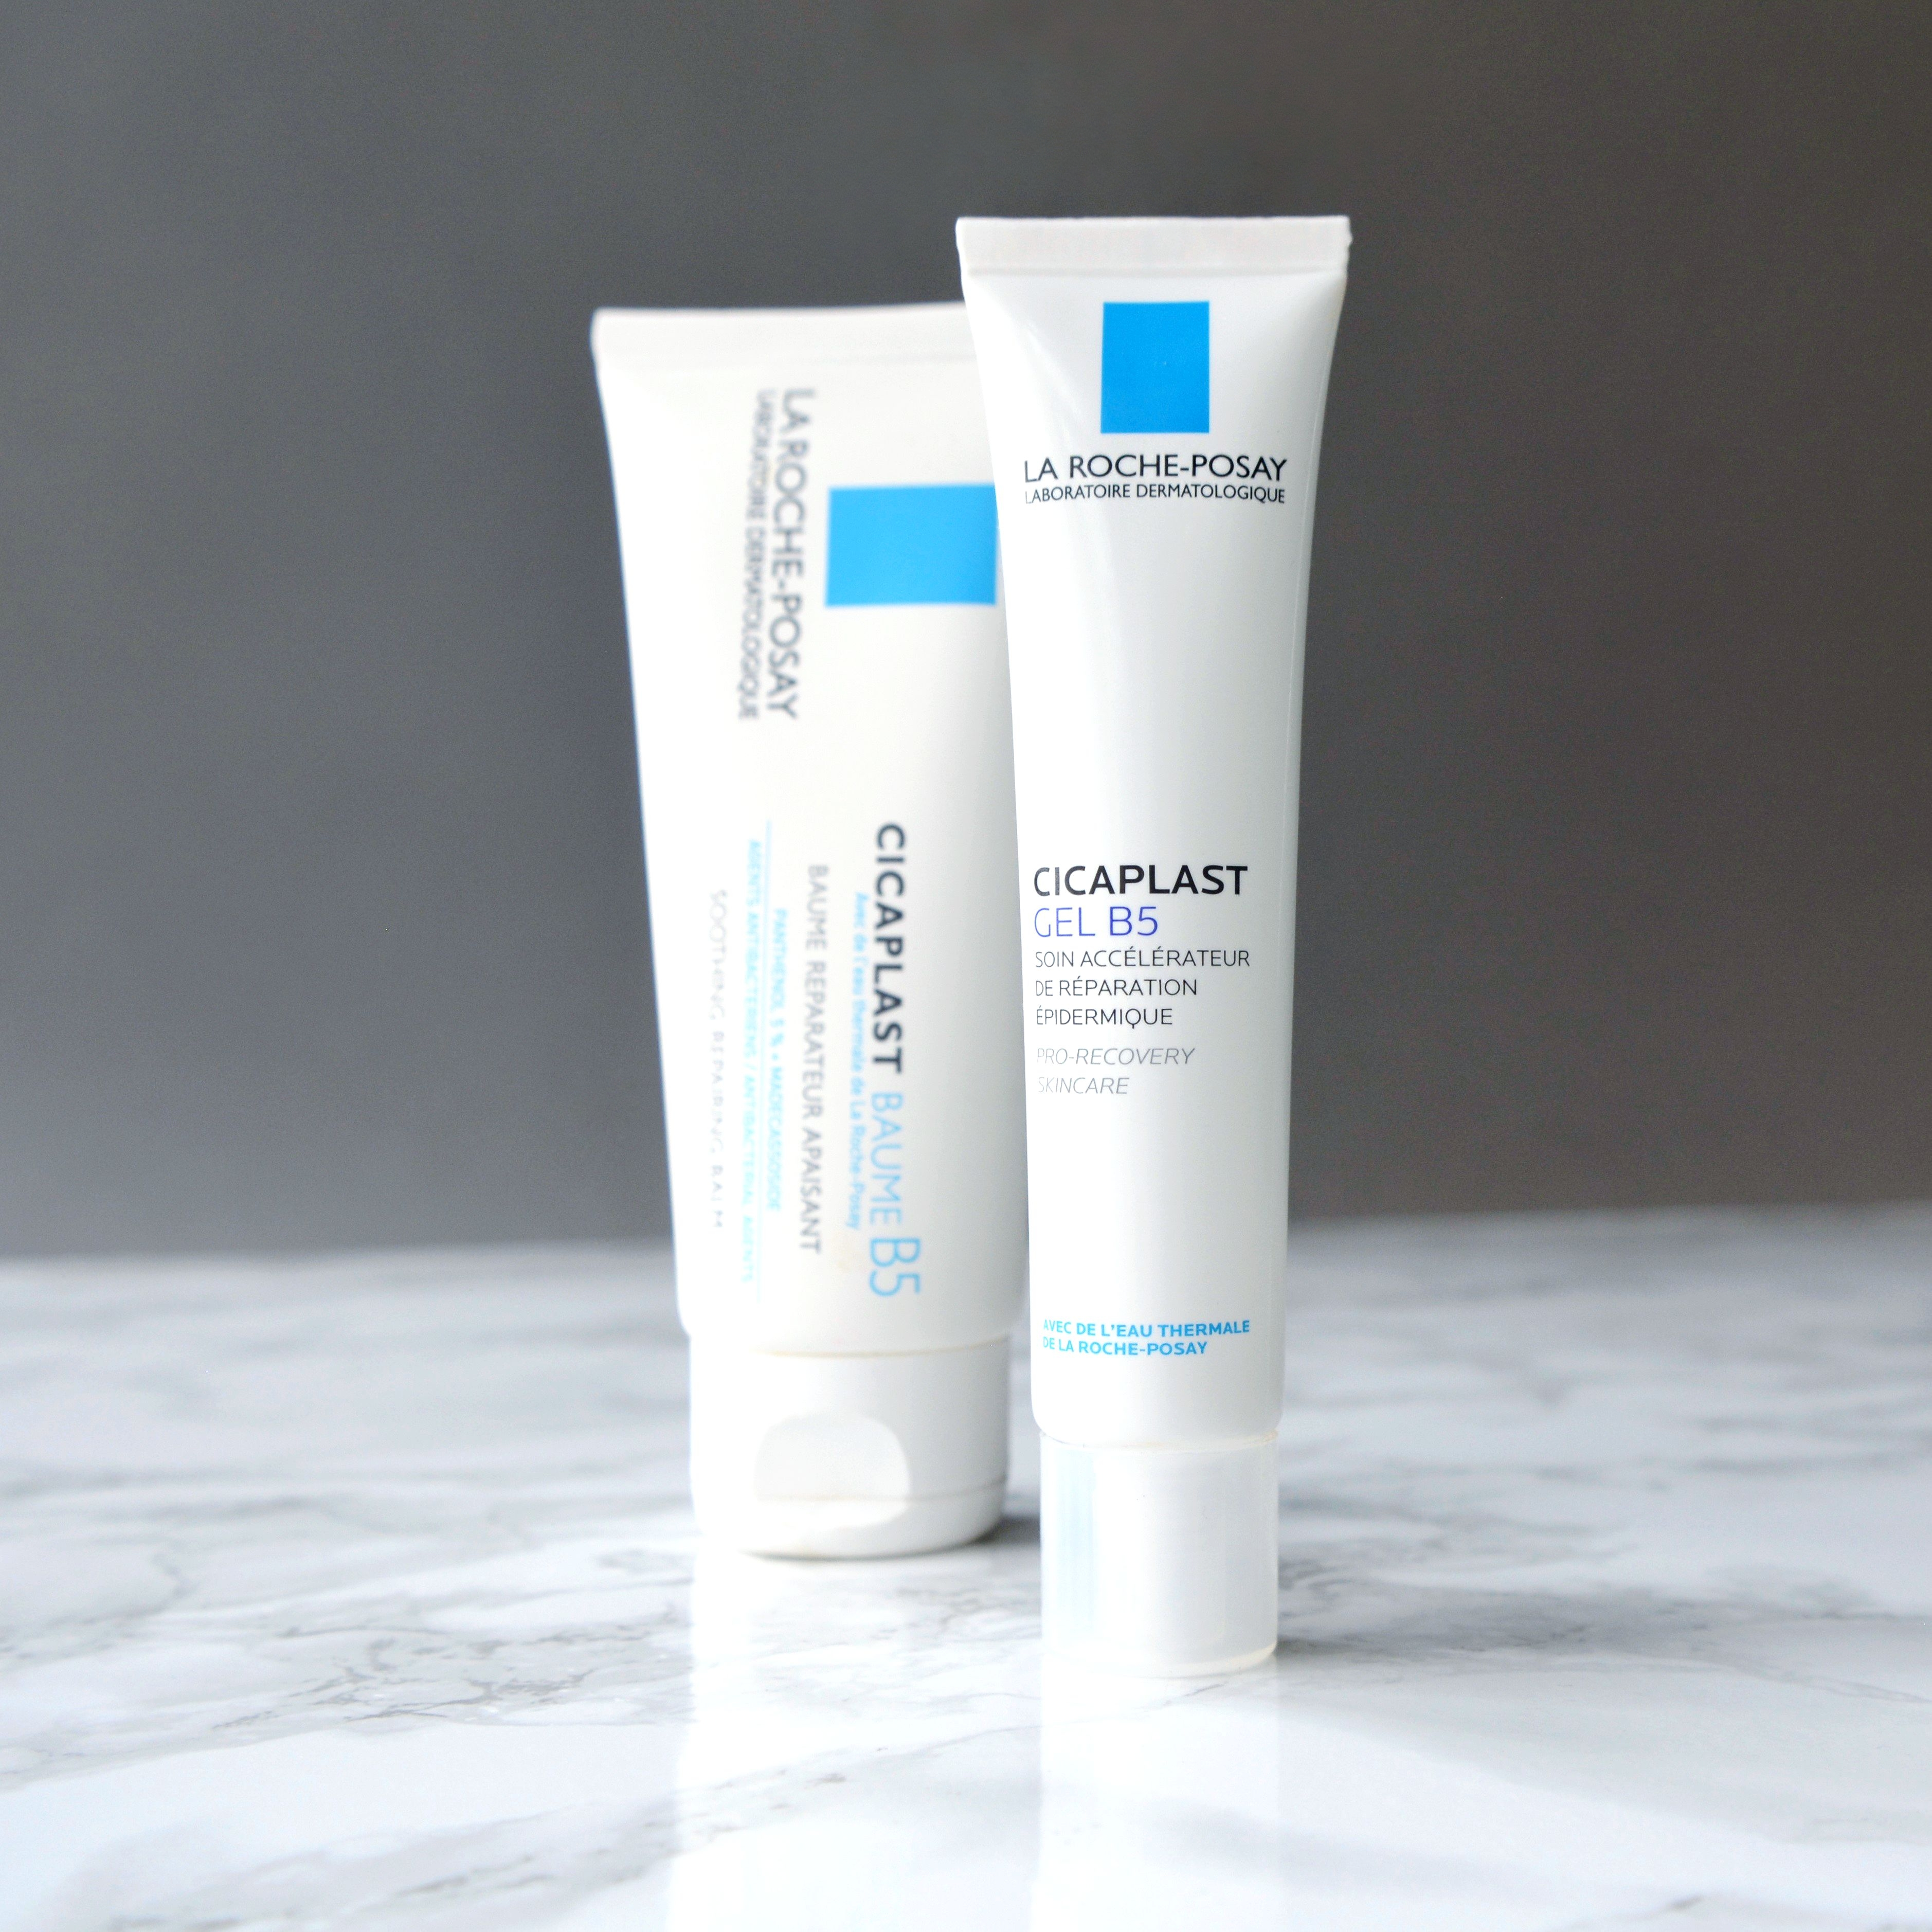 How to sooth dry itchy skin: La Roche-Posay Cicaplast range. These products are great on my sensitive rosacea skin, but can also be used on nappy rash, sunburn, scrapes, post-peel or post-surgery skin! Read more about these cult beauty products on the blog. #talontedlex #larocheposay #cicaplast #rosacea #dryskin